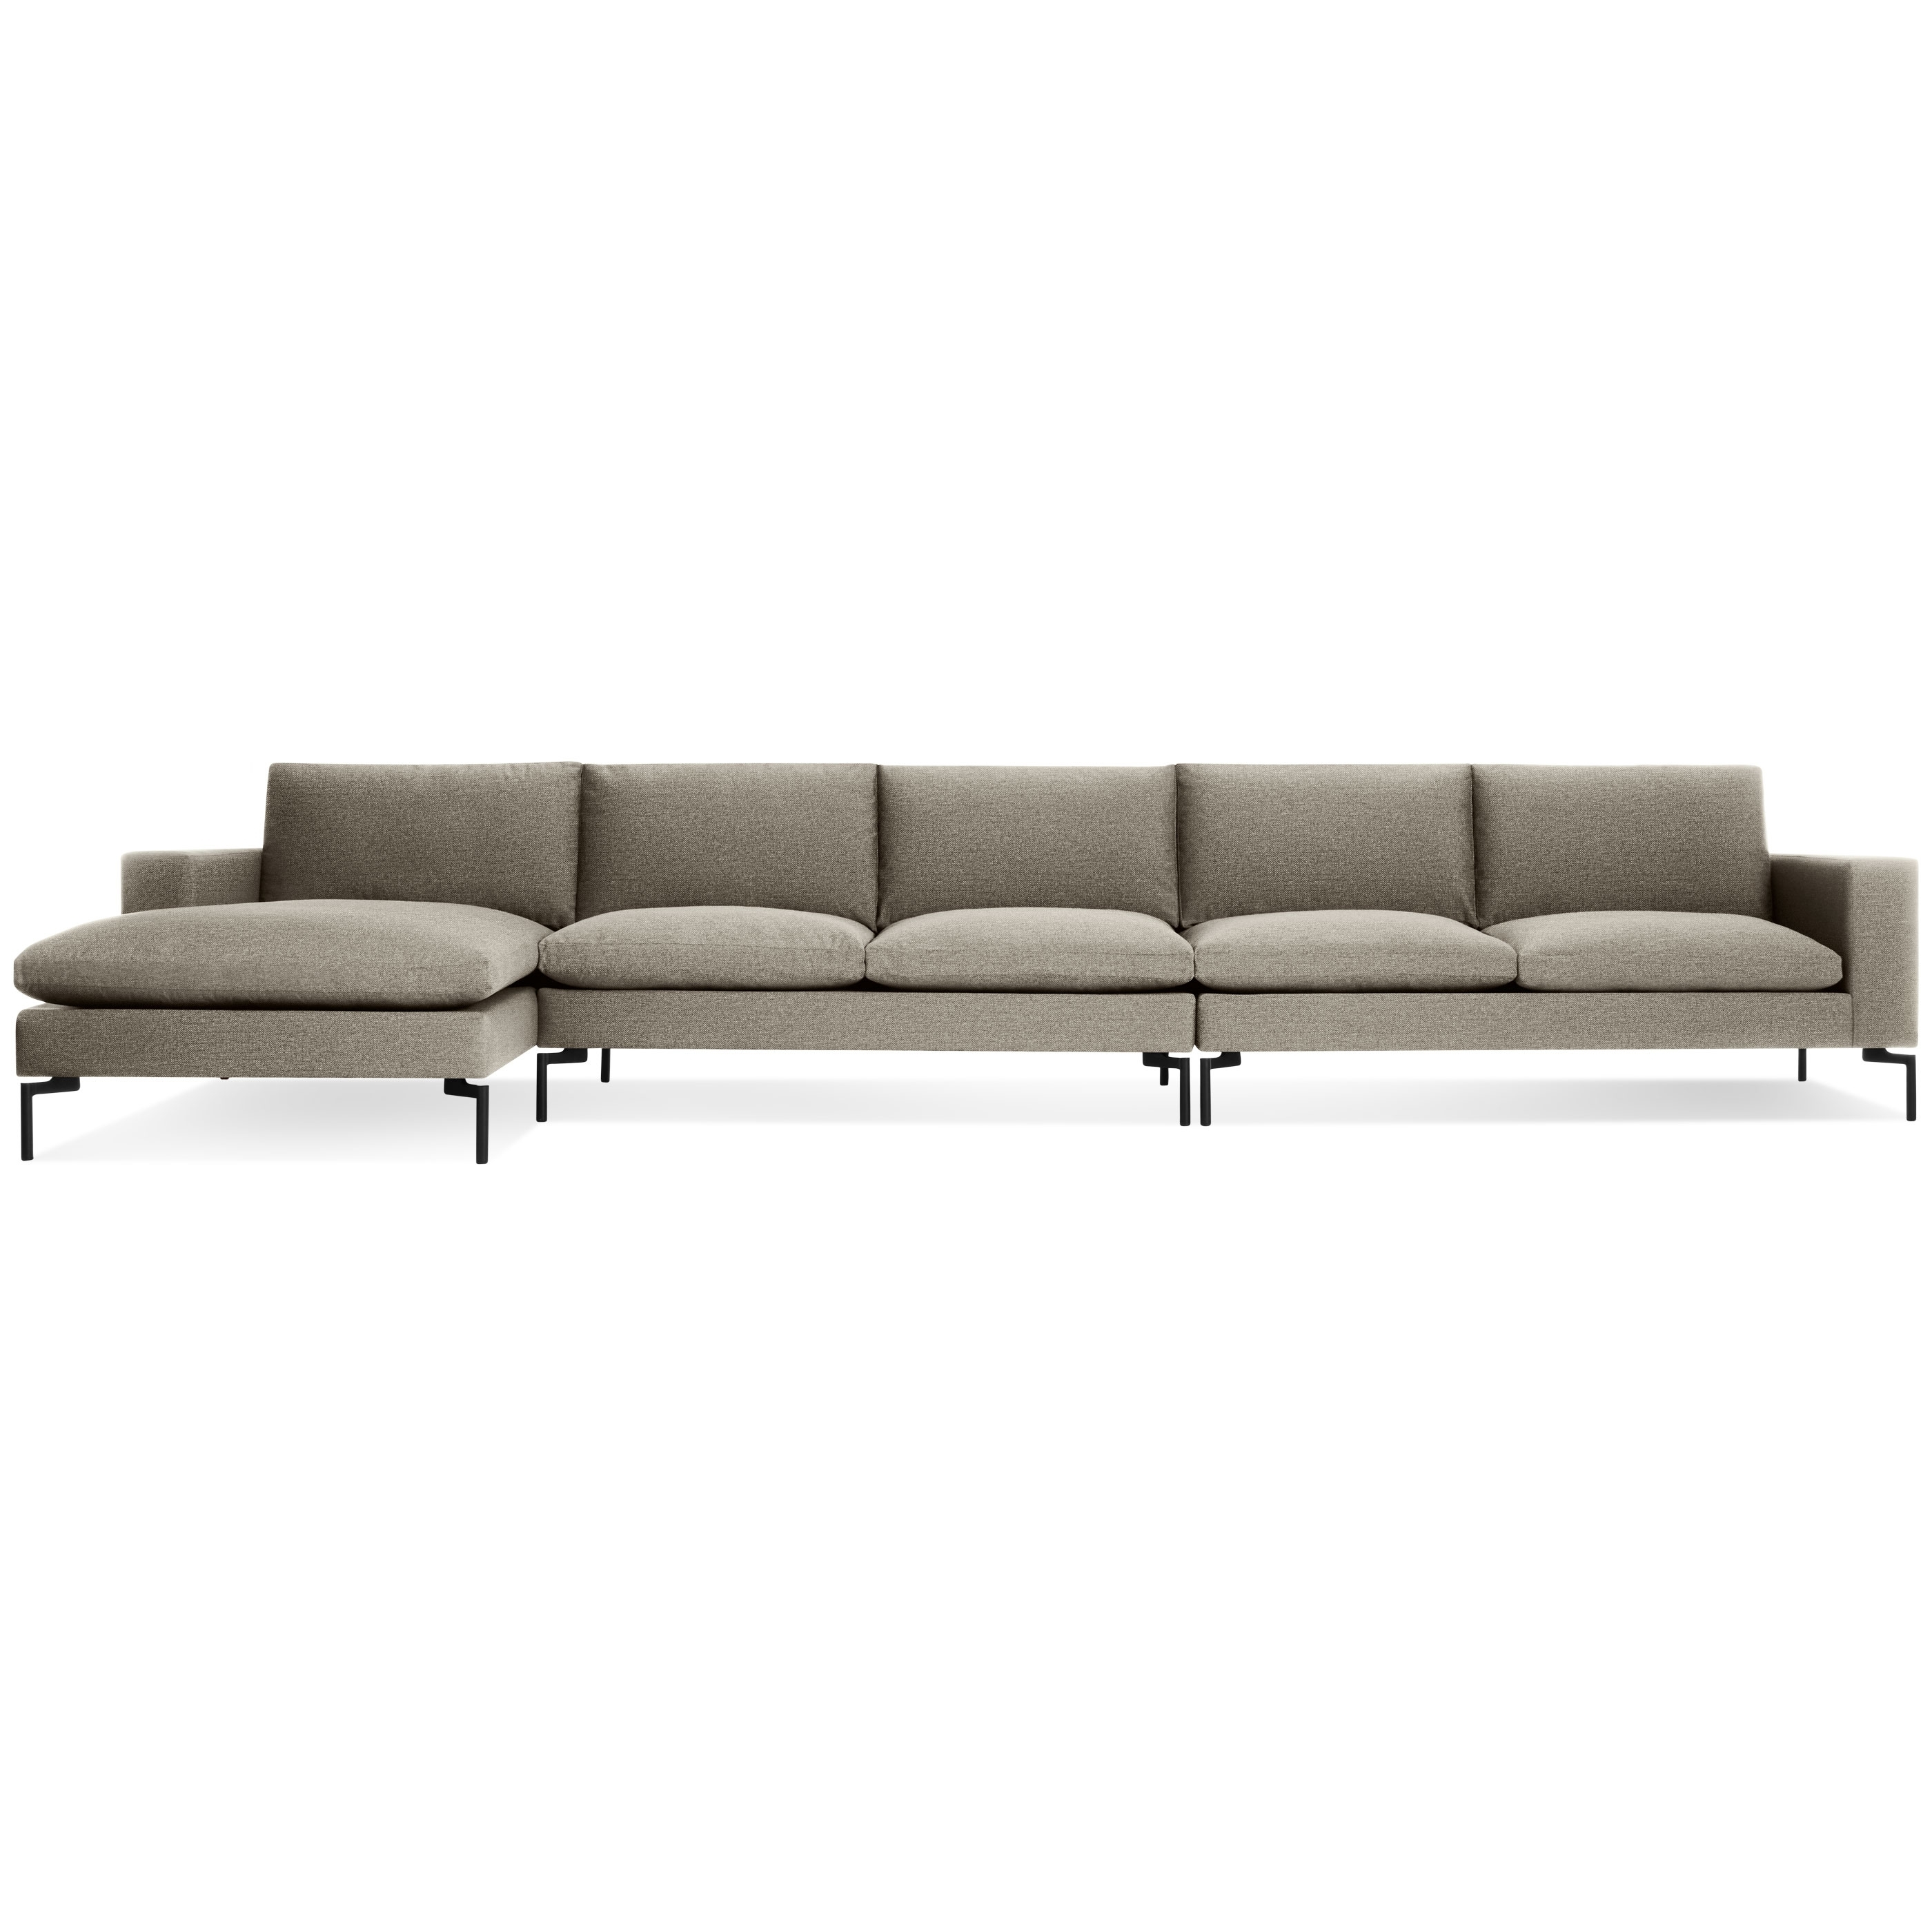 Blu Dot With Regard To Modern Sectional Sofas (View 5 of 20)